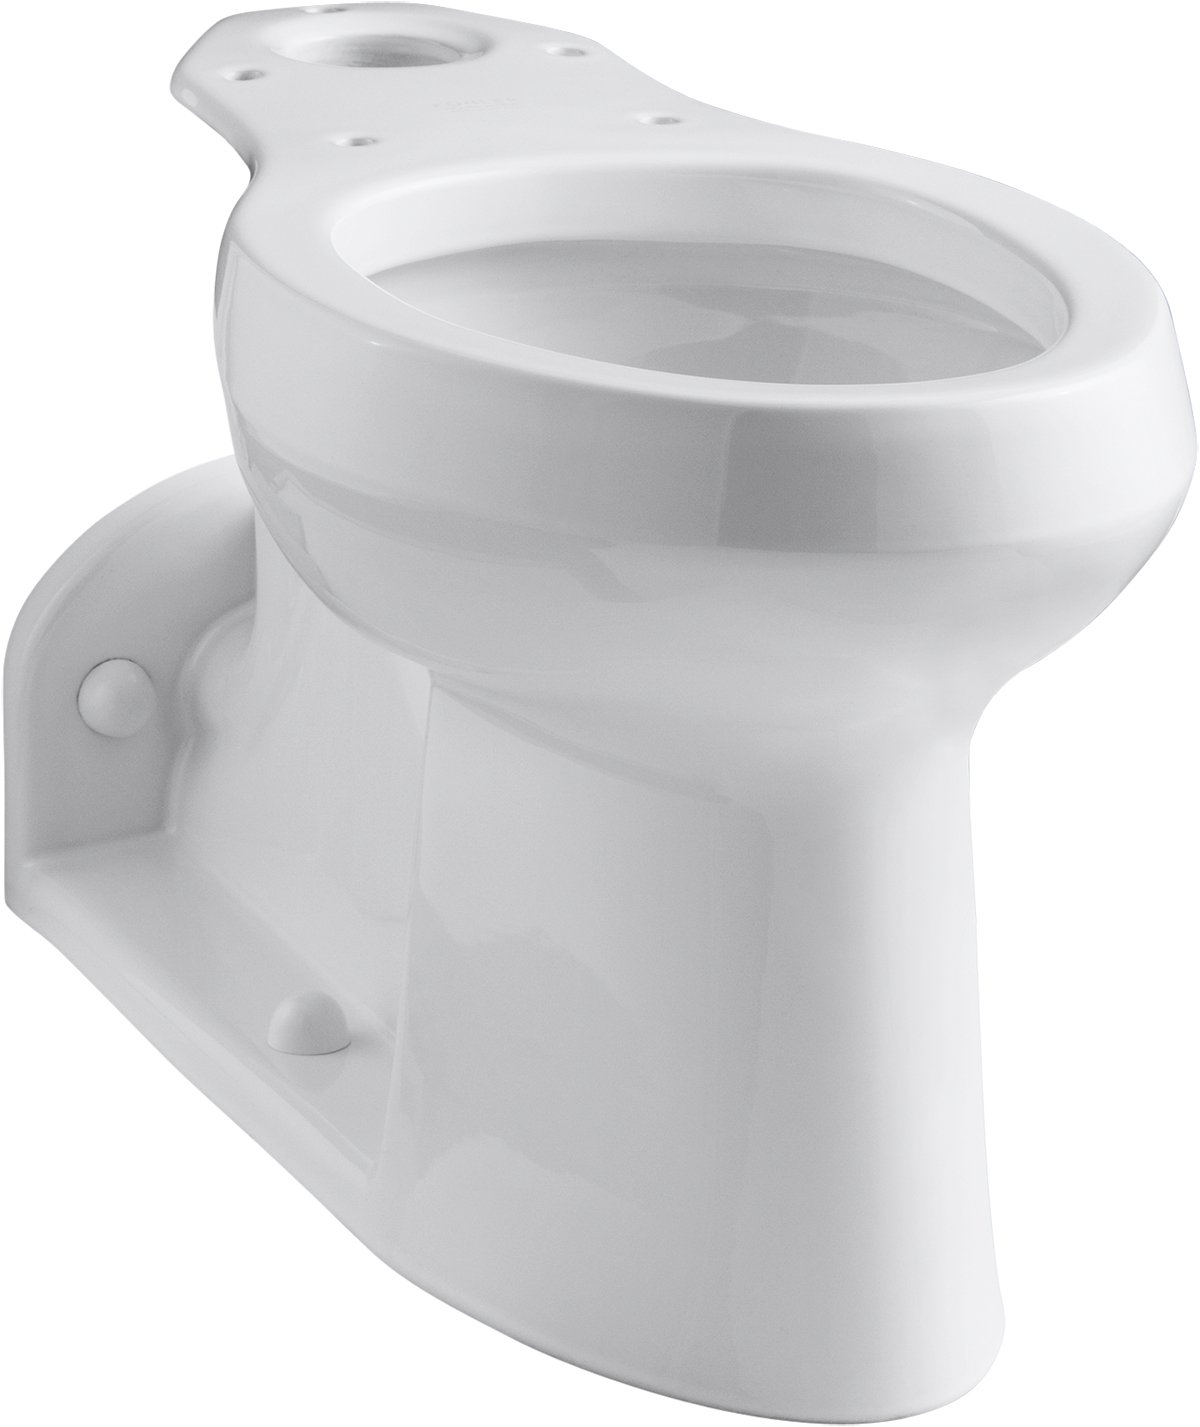 KOHLER 4305-SS-0 Barrington Toilet Bowl White